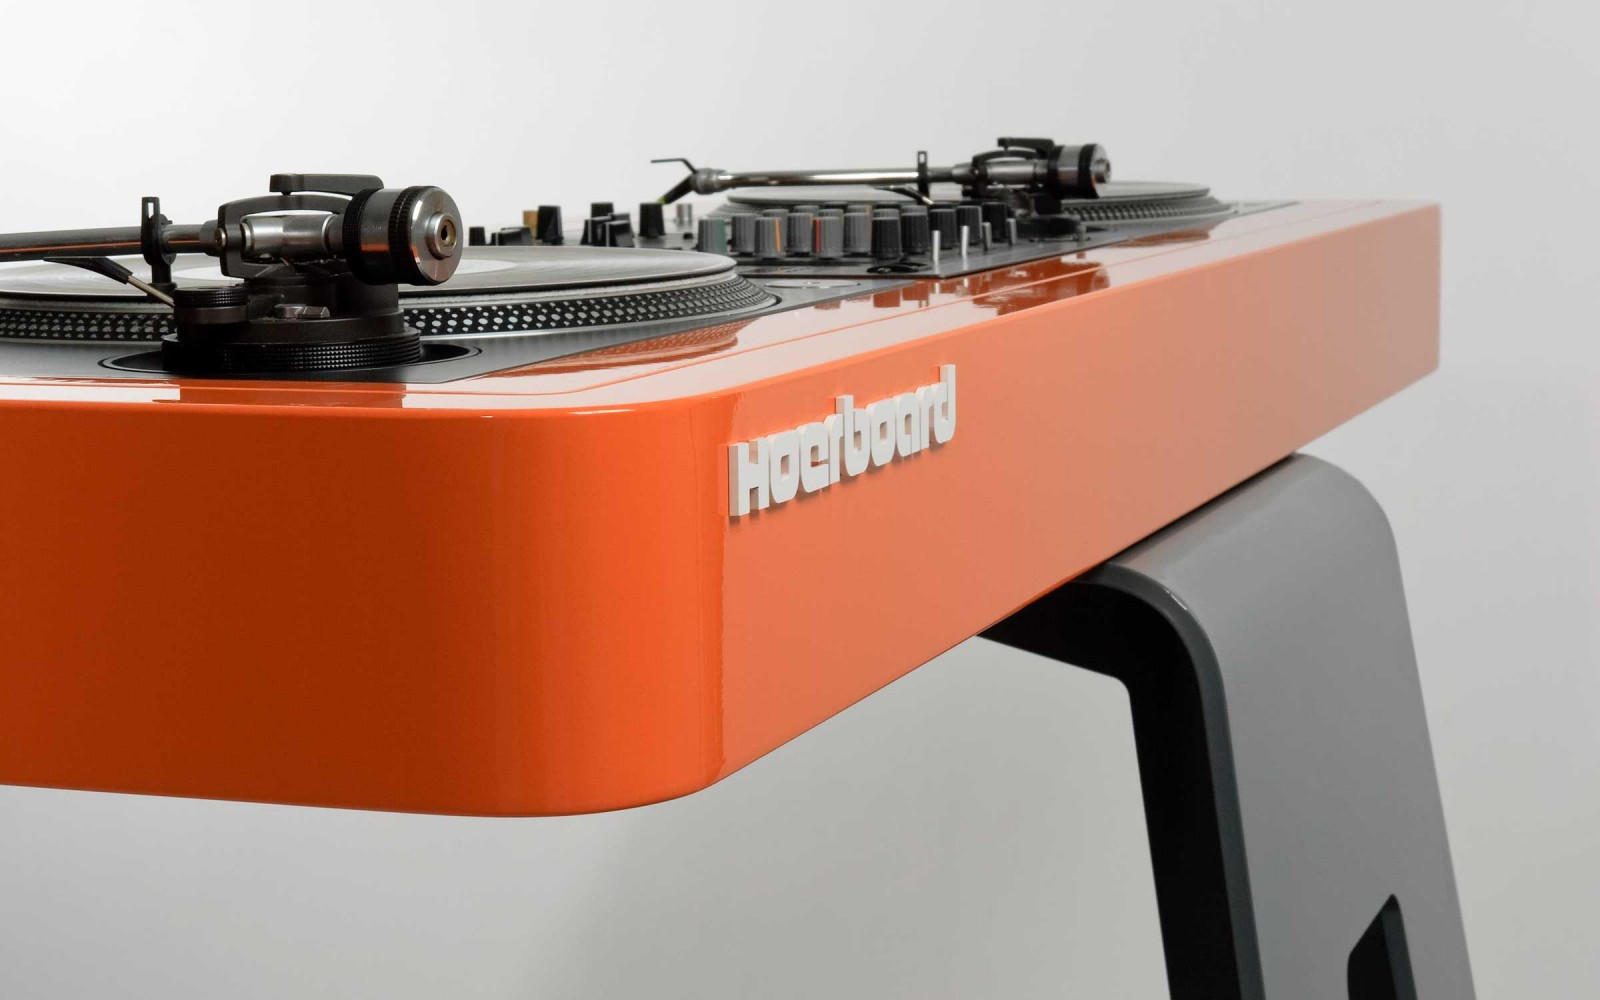 hoerboard pro audio dj furniture the customized dj table. Black Bedroom Furniture Sets. Home Design Ideas